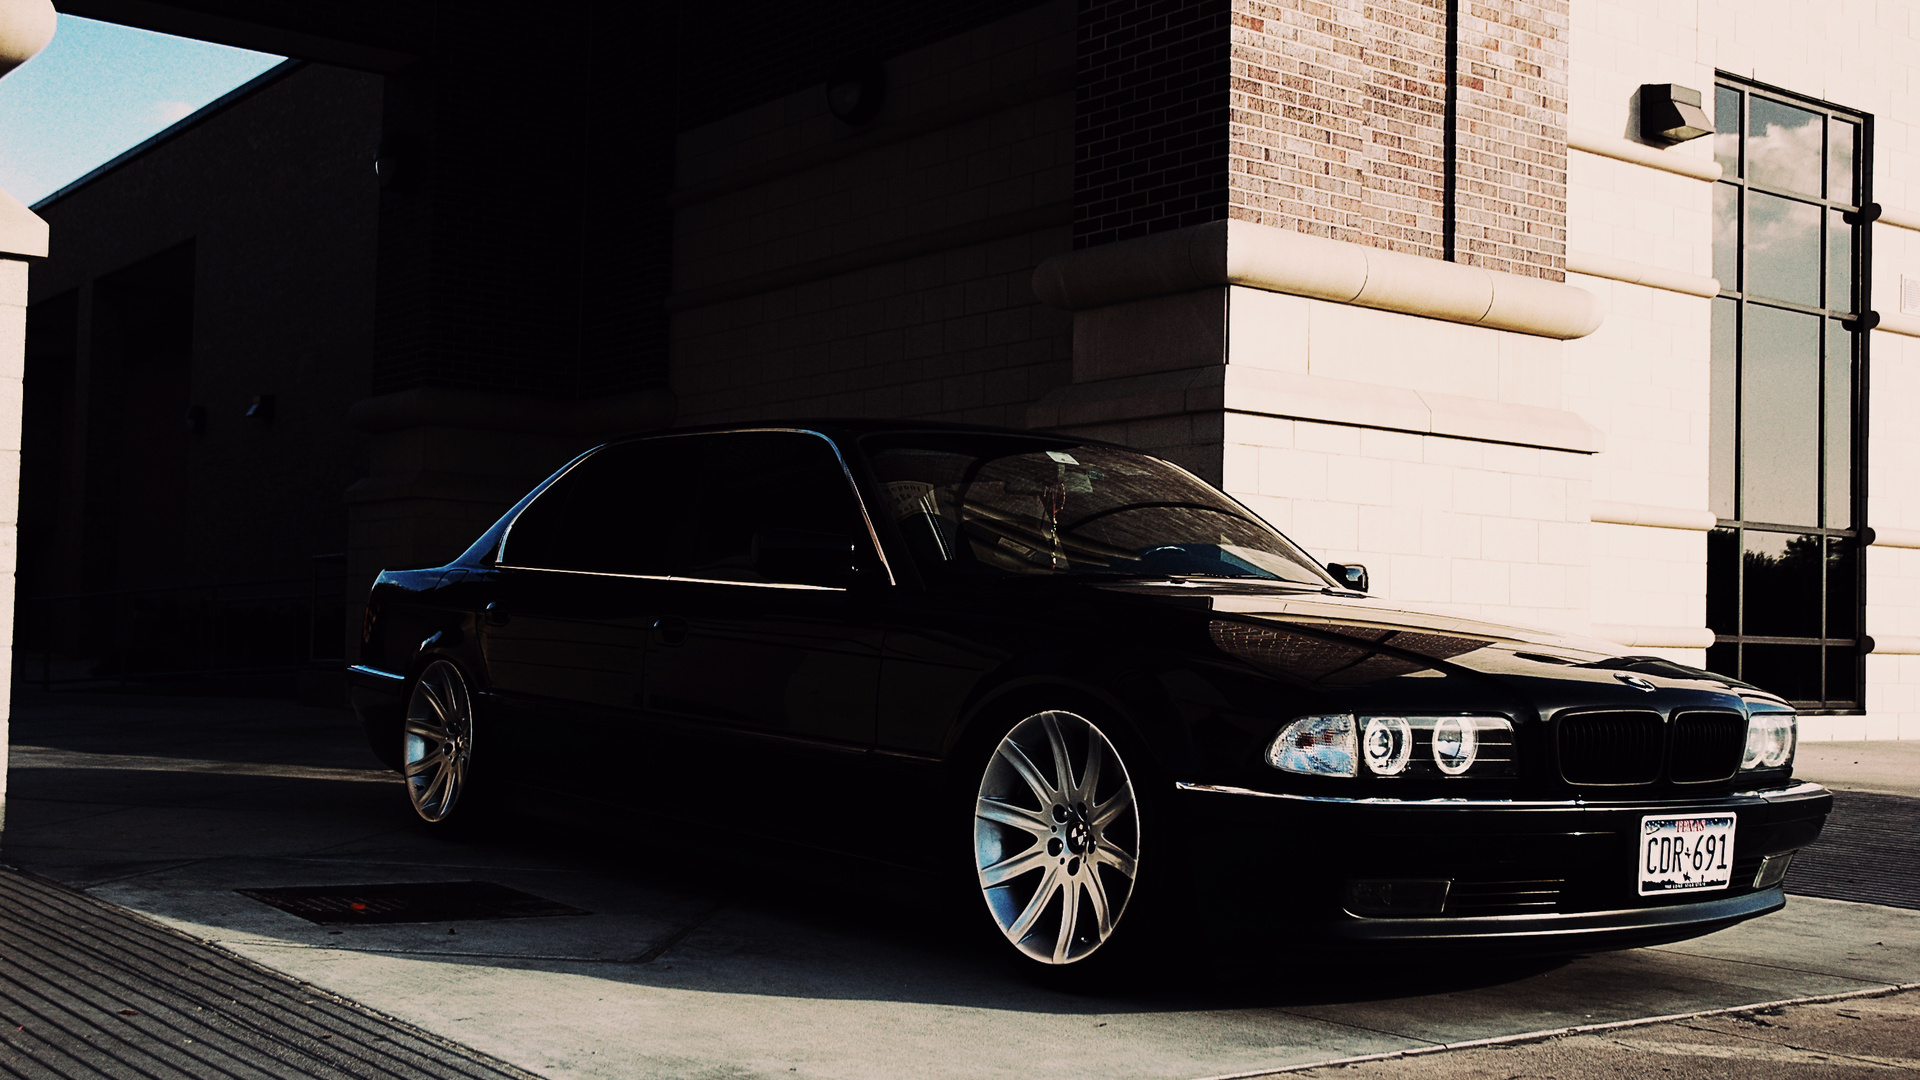 What Are Your Thoughts On The E38 Bmw